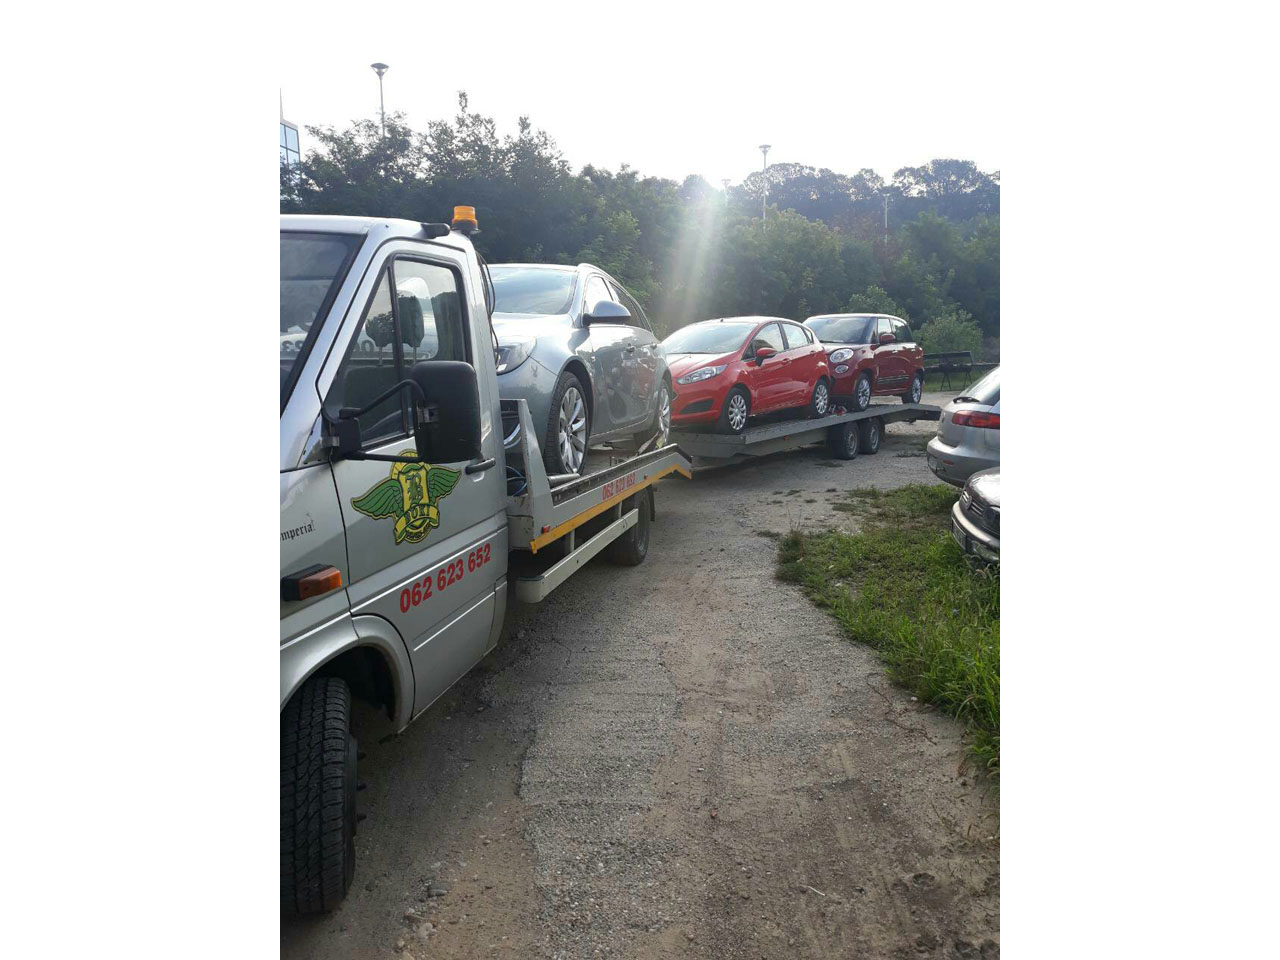 TOWING SERVICE Towing service Beograd